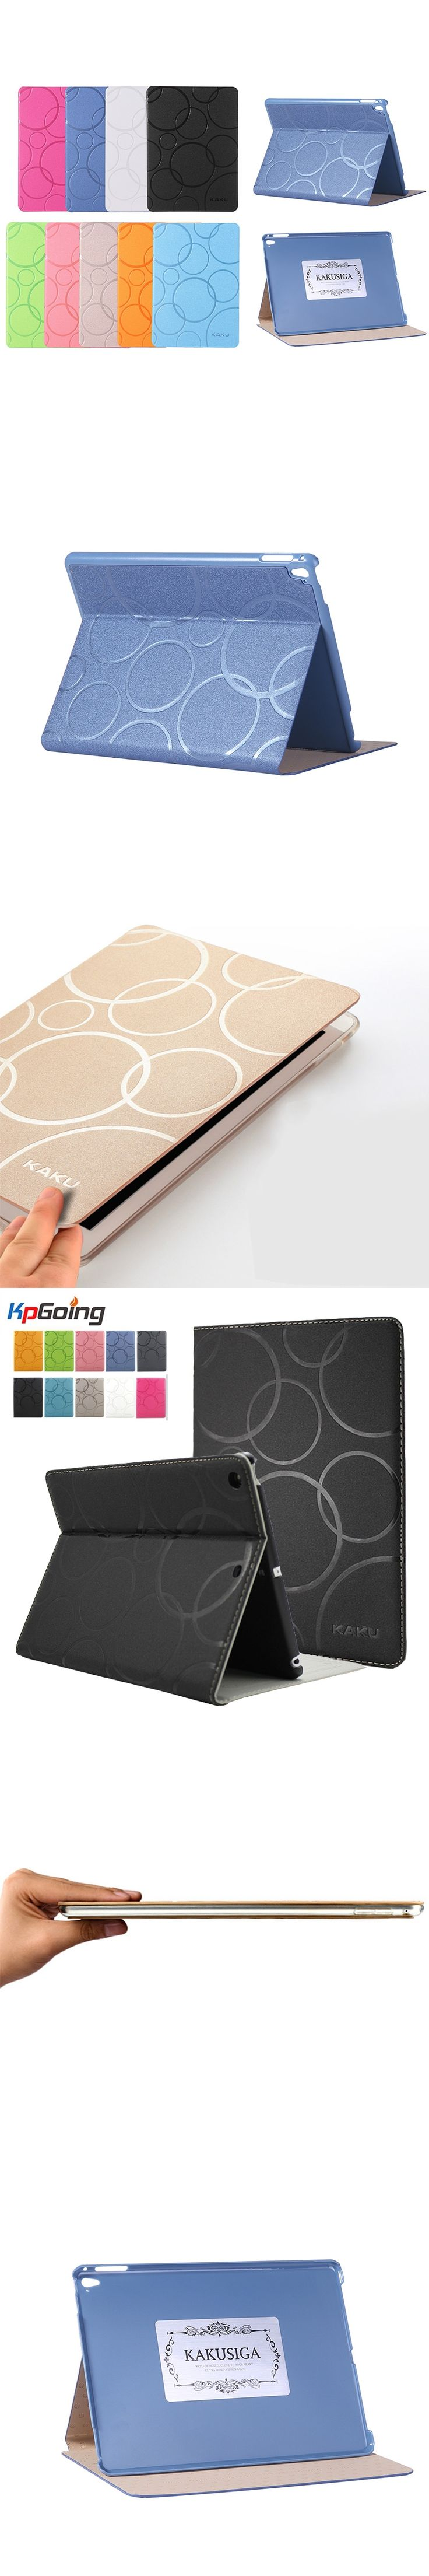 Case for IPad 2 3 4,Solid Color Geometric PU Leather Ultra Slim Cover Ebook Case for IPad 2/3/4  Flip Stand Tablet Cover Bag Fun